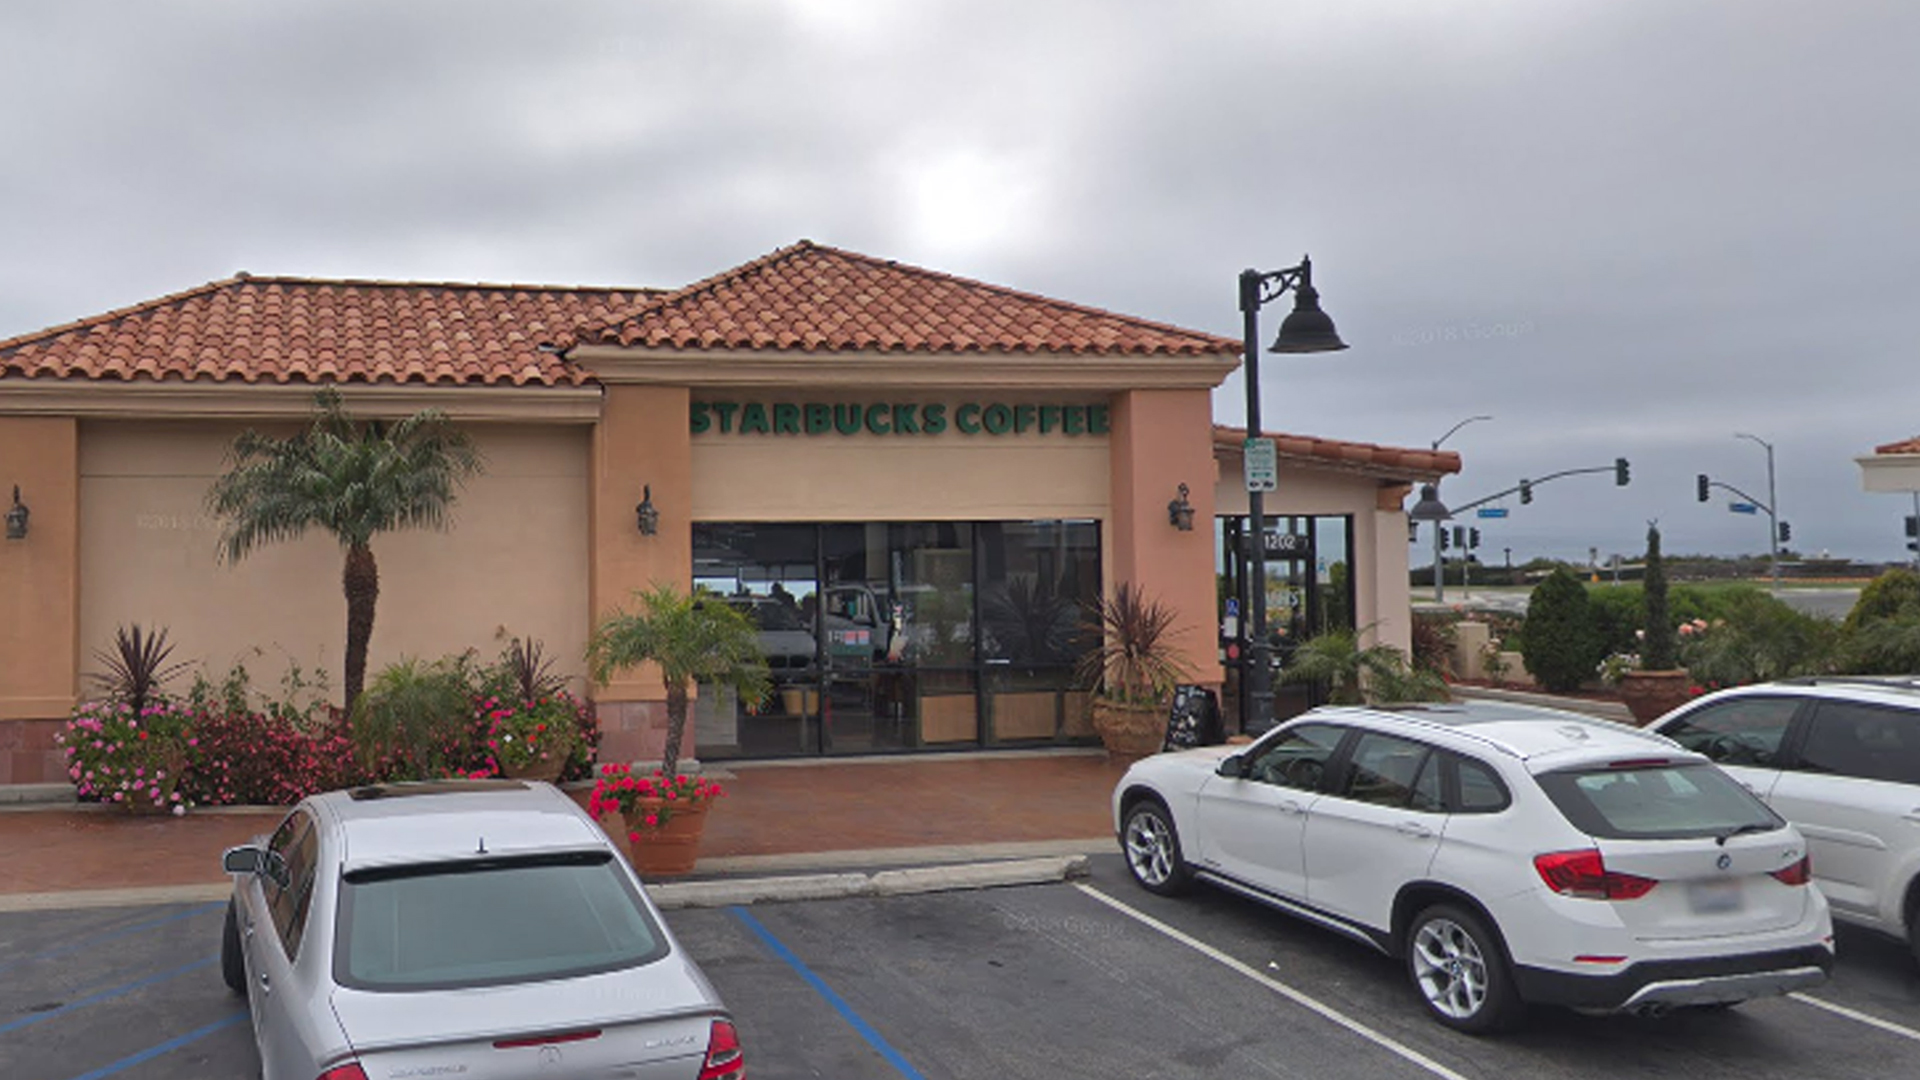 The Starbucks in Rancho Palos Verdes' Golden Cove Shopping Center is seen in a Google Maps Street View image.